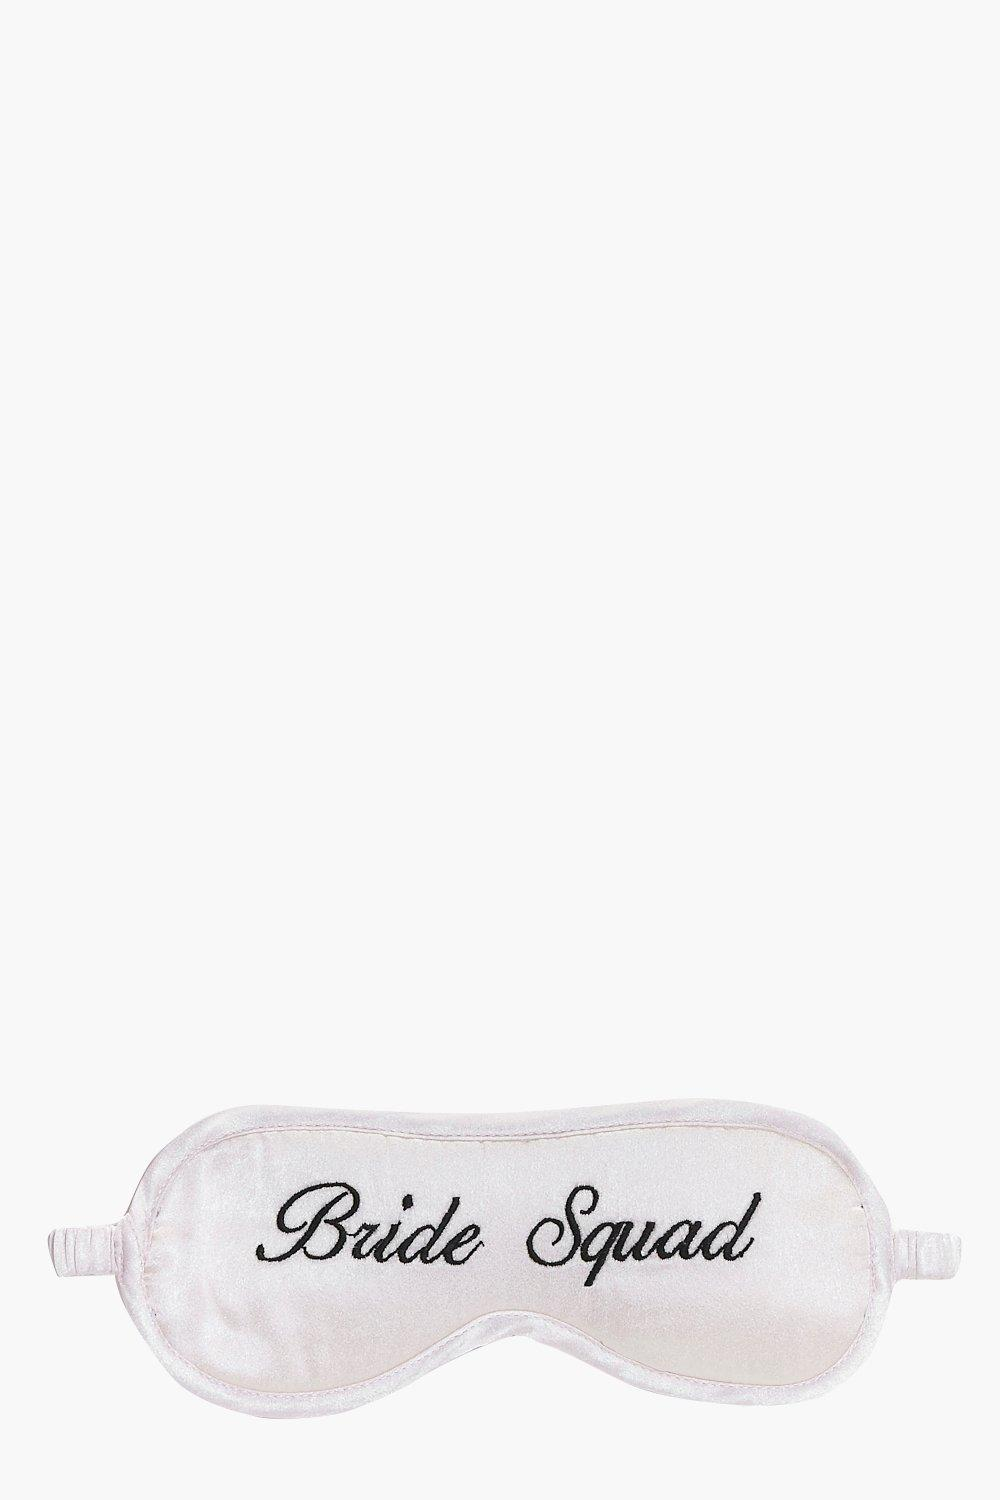 Squad Embroidered Satin Eye Mask - nude - Bride Sq